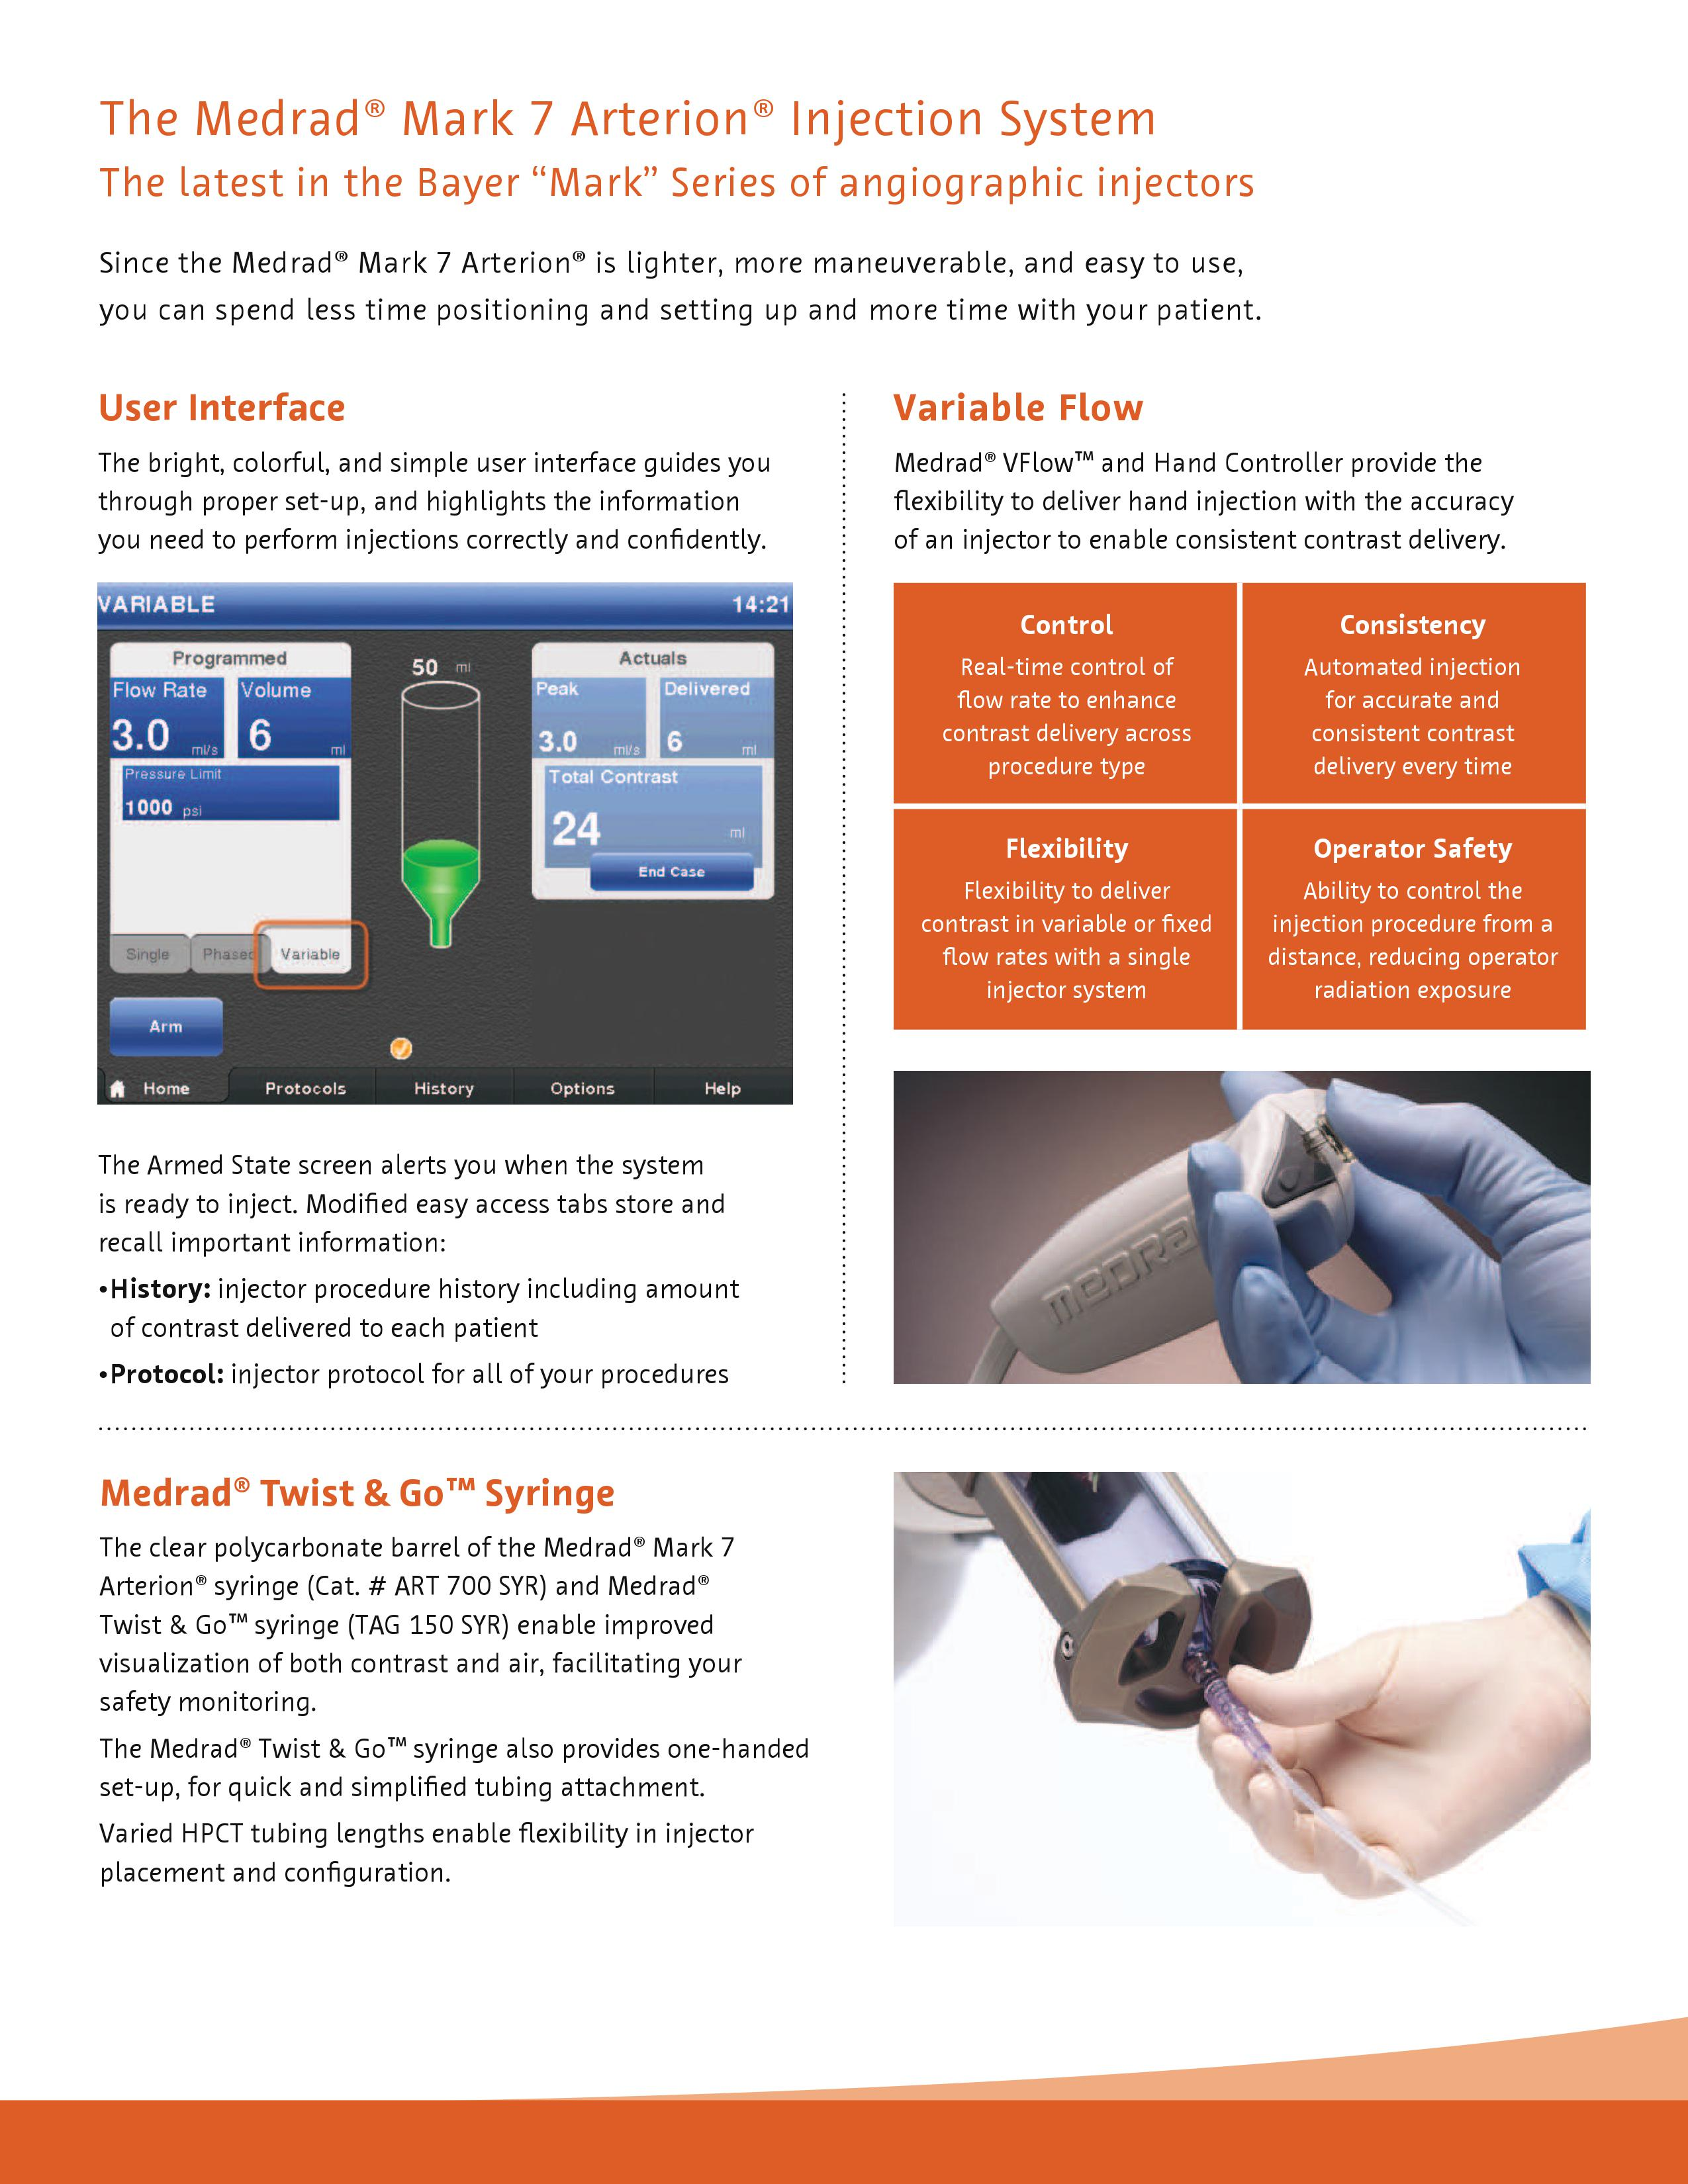 Medrad® Mark 7 Arterion® Injection System